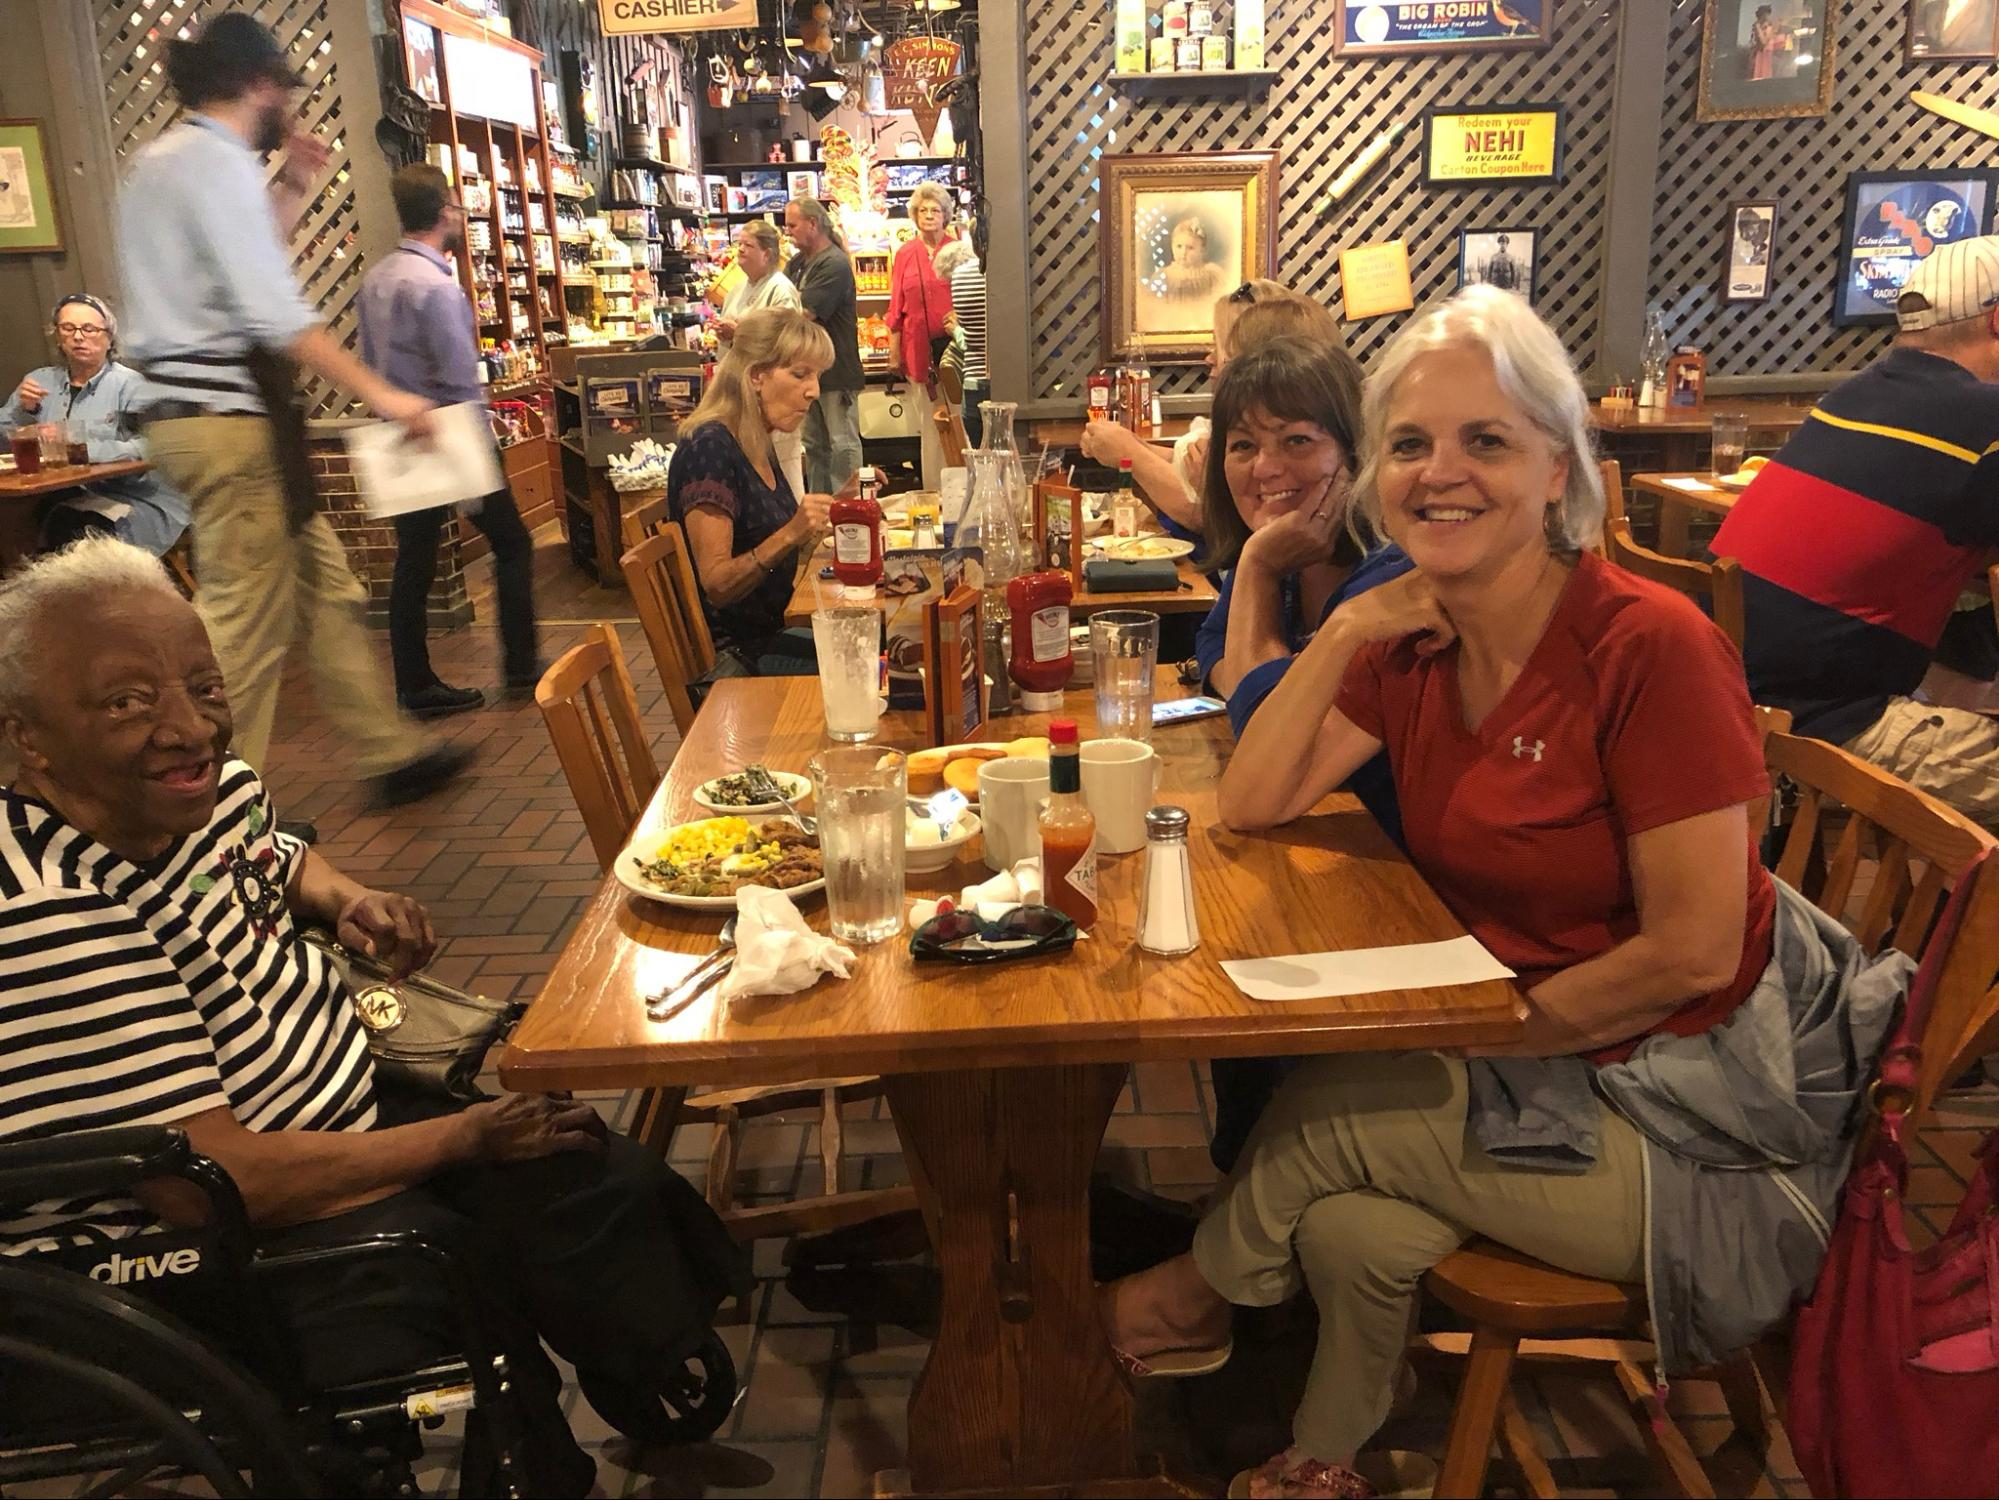 """""""So many times I have been impacted by serving widows, but when one of the widows was having a hard time at home, Denise, Rosemary Sherrod and I took her to Cracker Barrel. Afterwards, I visited and asked her if she enjoyed our time out. She was glowing and so happy from the love she received. Moments like this make me smile and I know makes the Lord smile too."""" (Caption by Kara Hadley, right in bottom photo)"""